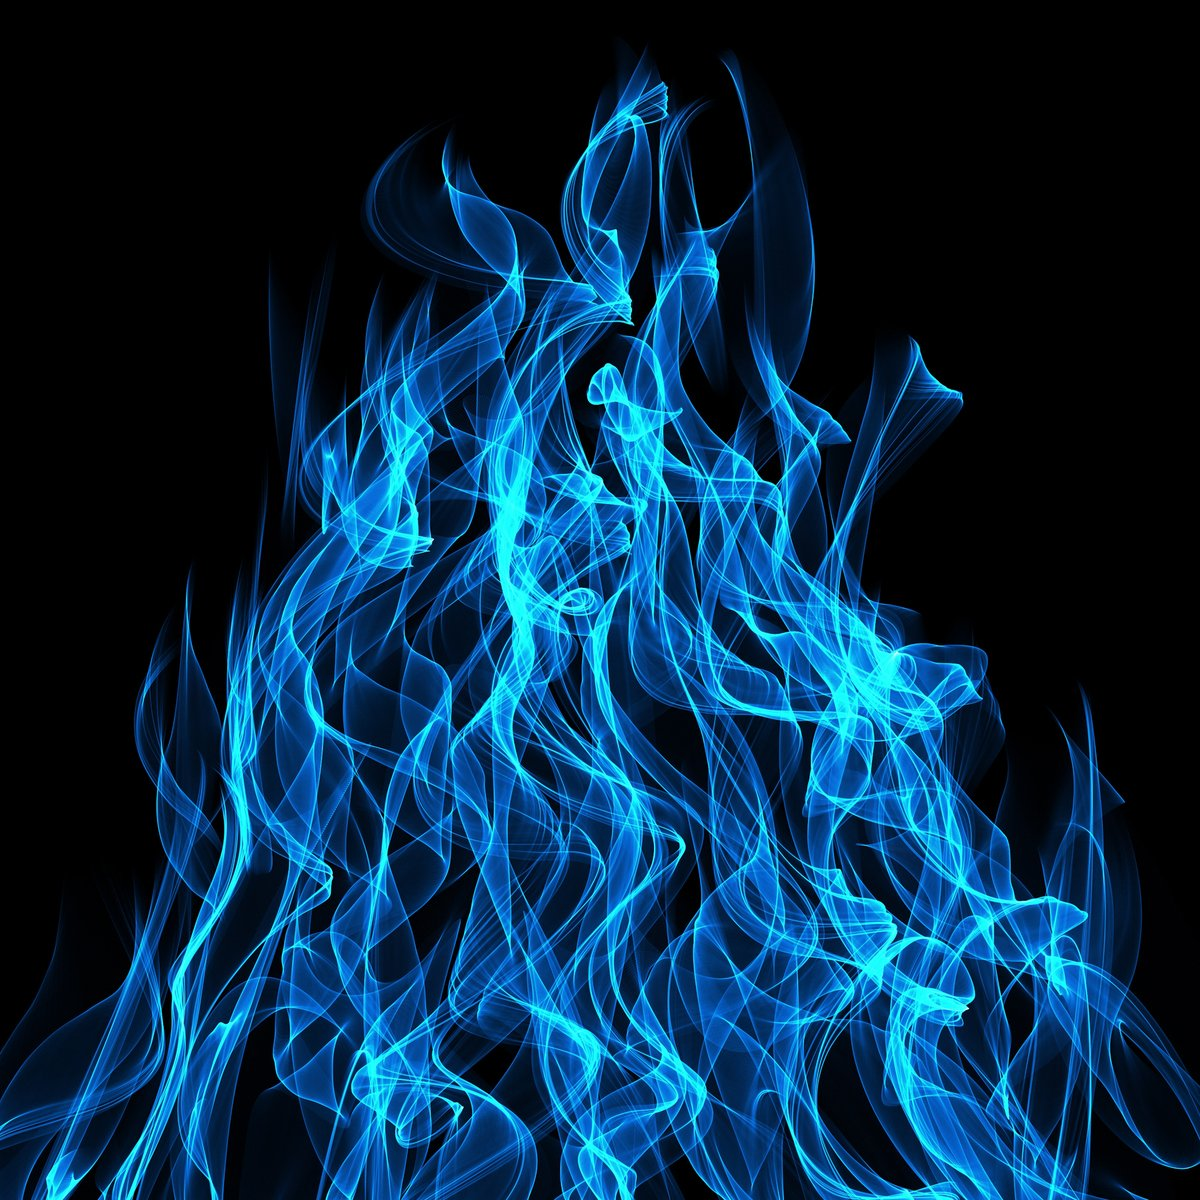 Free blue flames stock photo for Silverleaf com